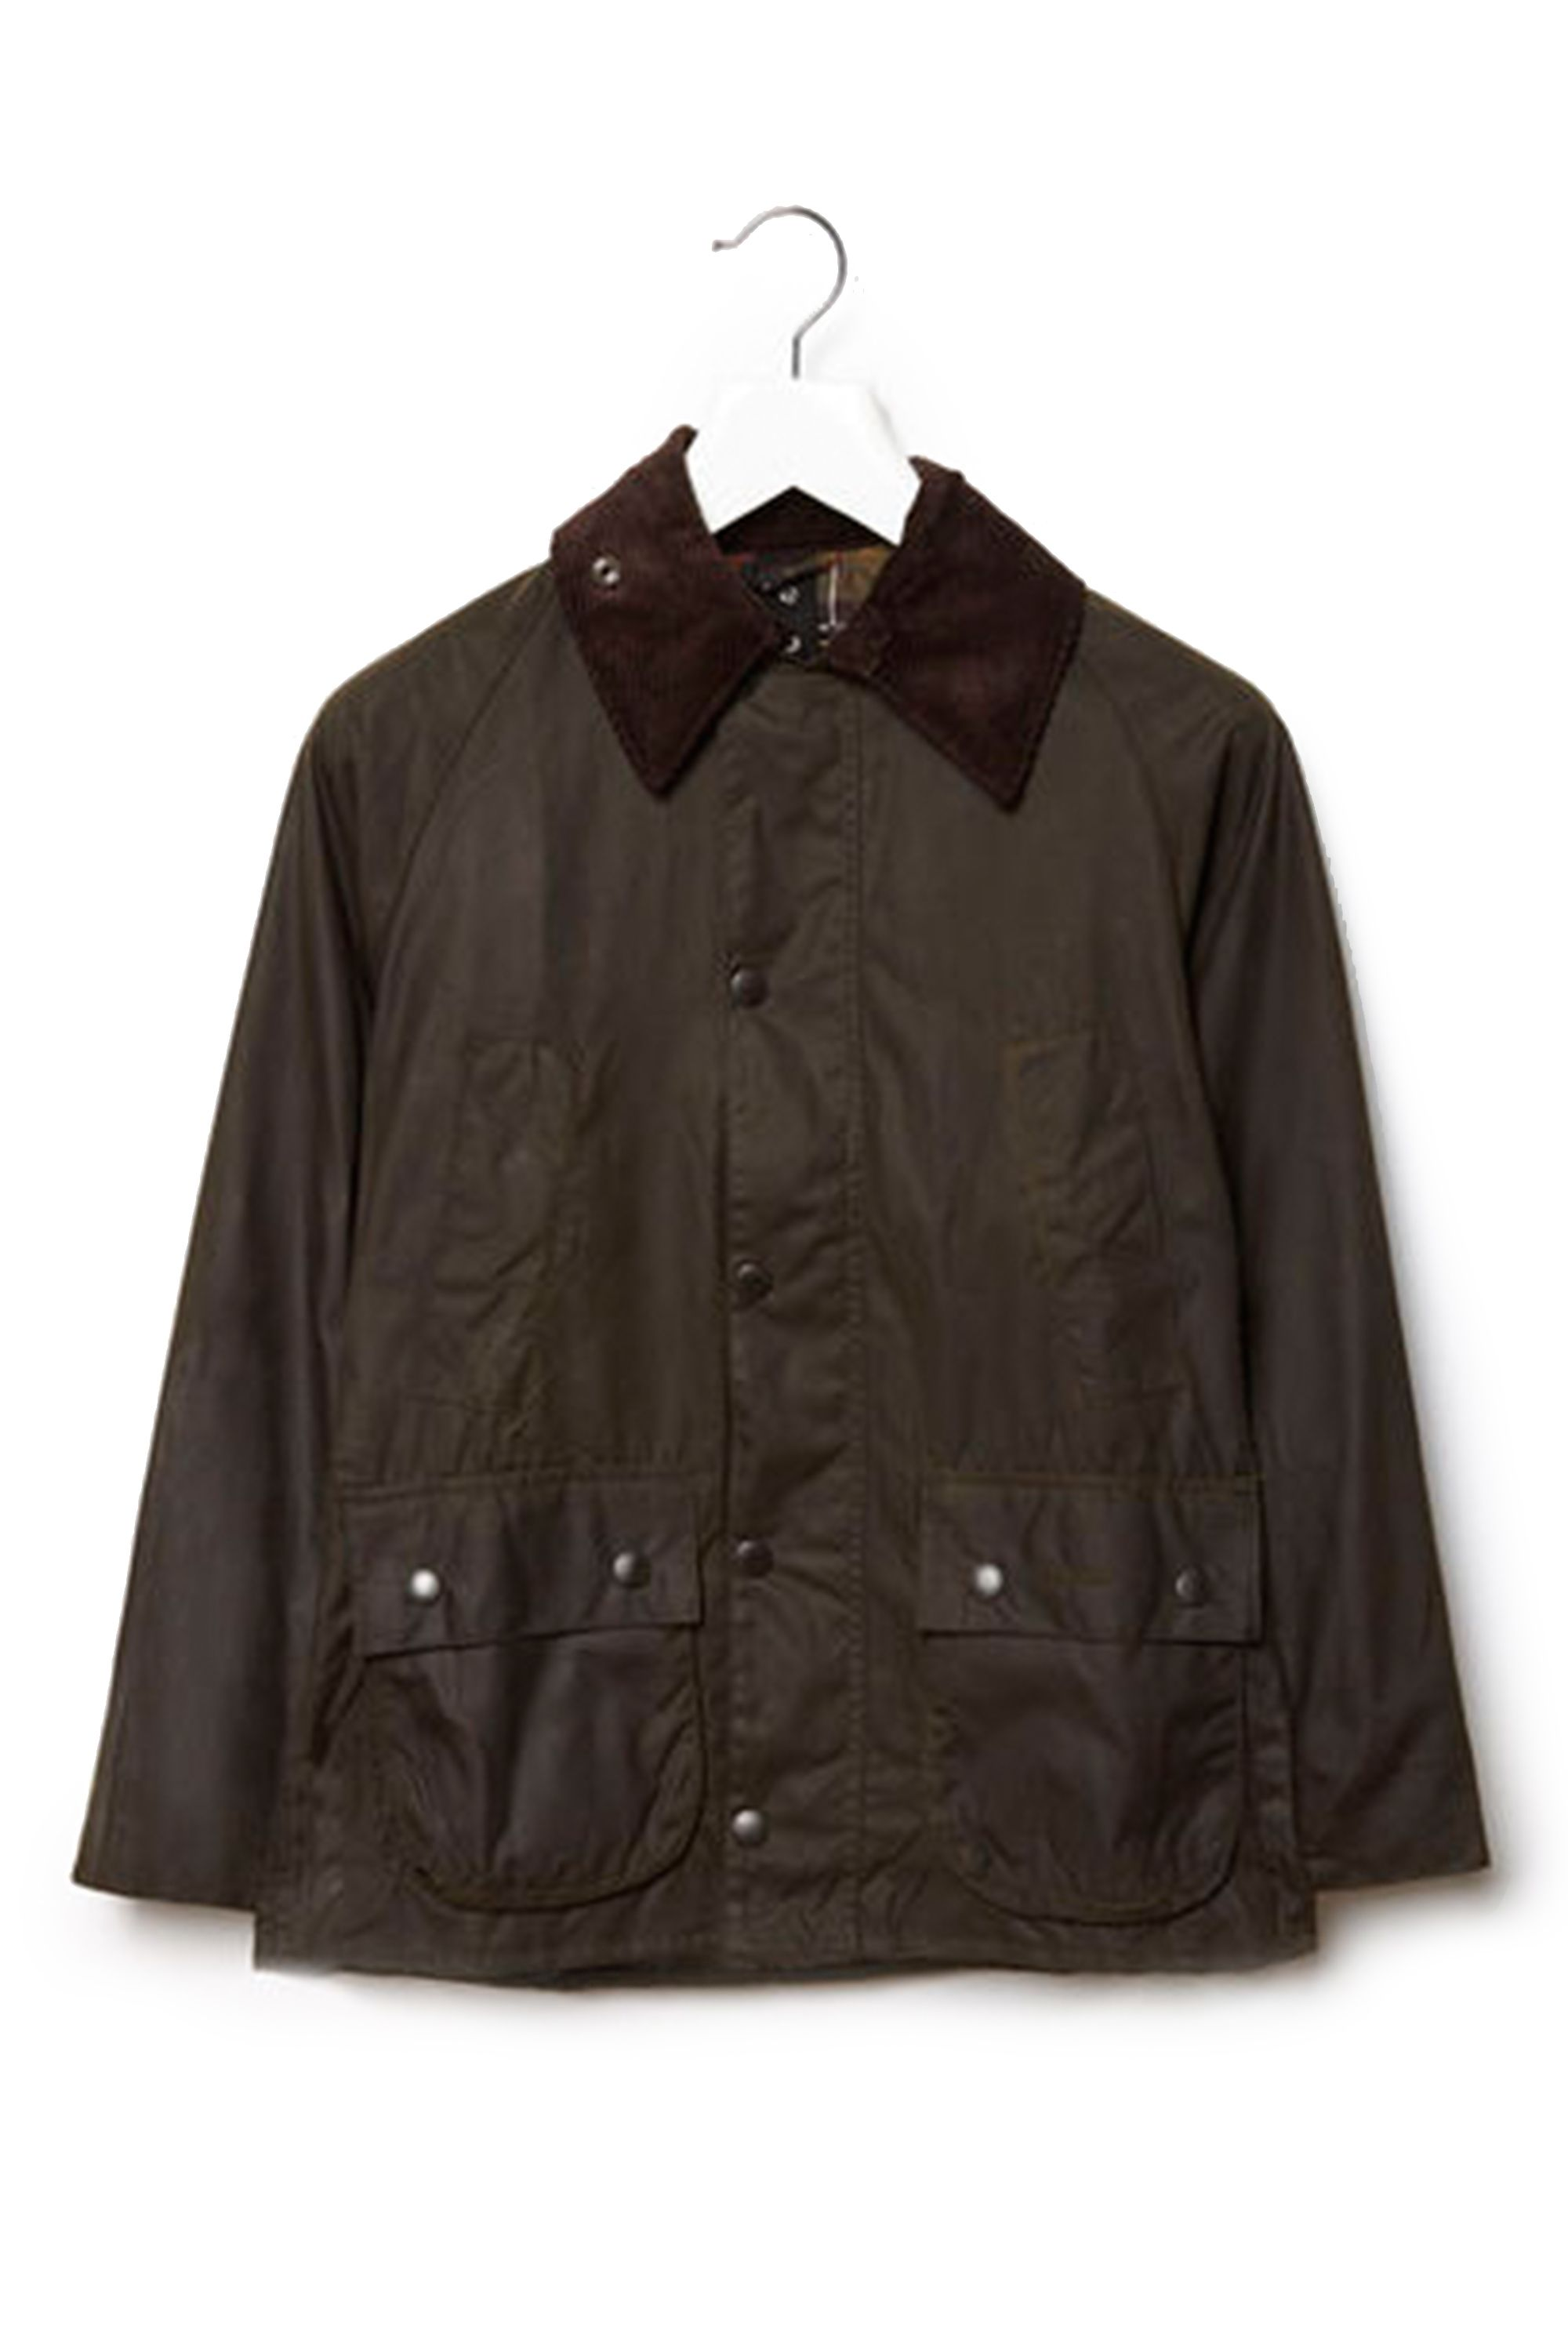 """<p>Barbour Classic Bedale Wax Jacket, $380; <a href=""""http://www.lagarconne.com/store/item/94-19-/38881/Barbour-Classic-Bedale-Wax-Jacket.htm"""" target=""""_blank"""" data-tracking-id=""""recirc-text-link"""">lagarconne.com</a></p>"""